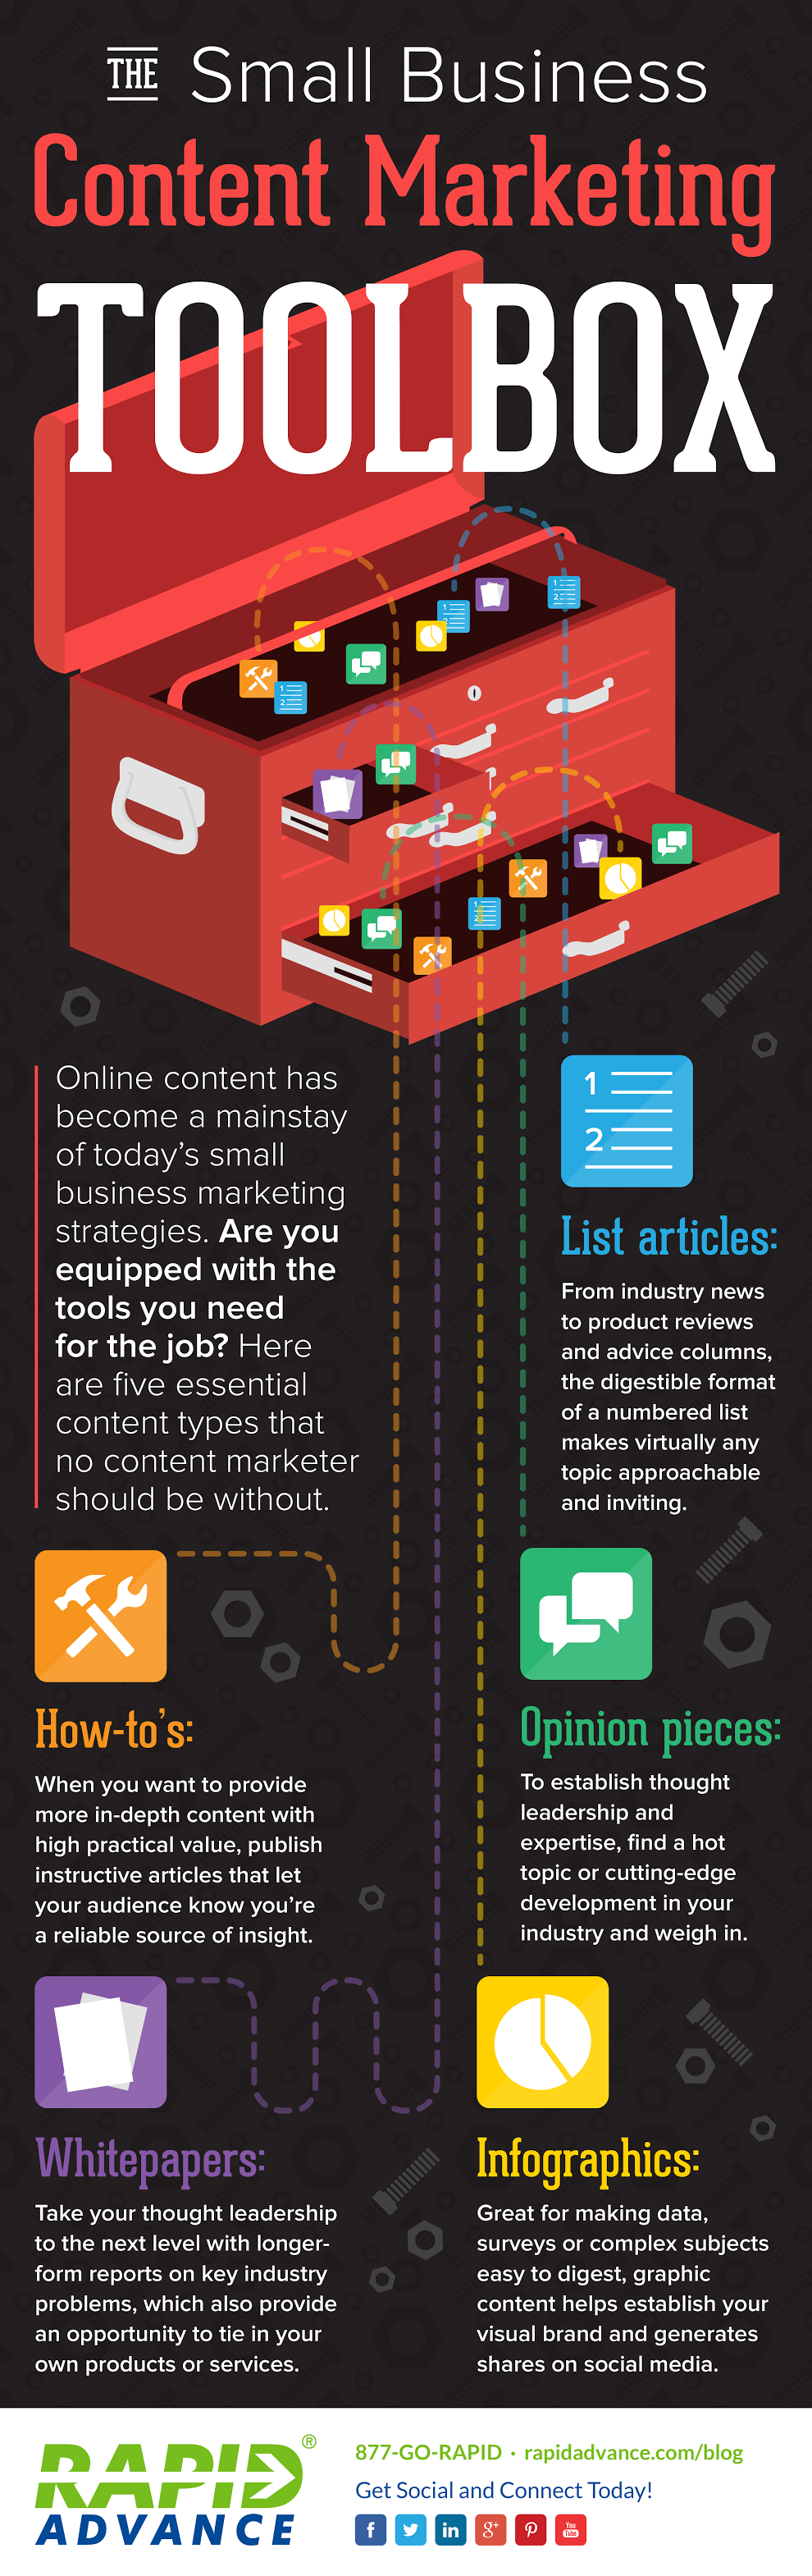 Infographic | The Small Business Content Marketing Toolbox